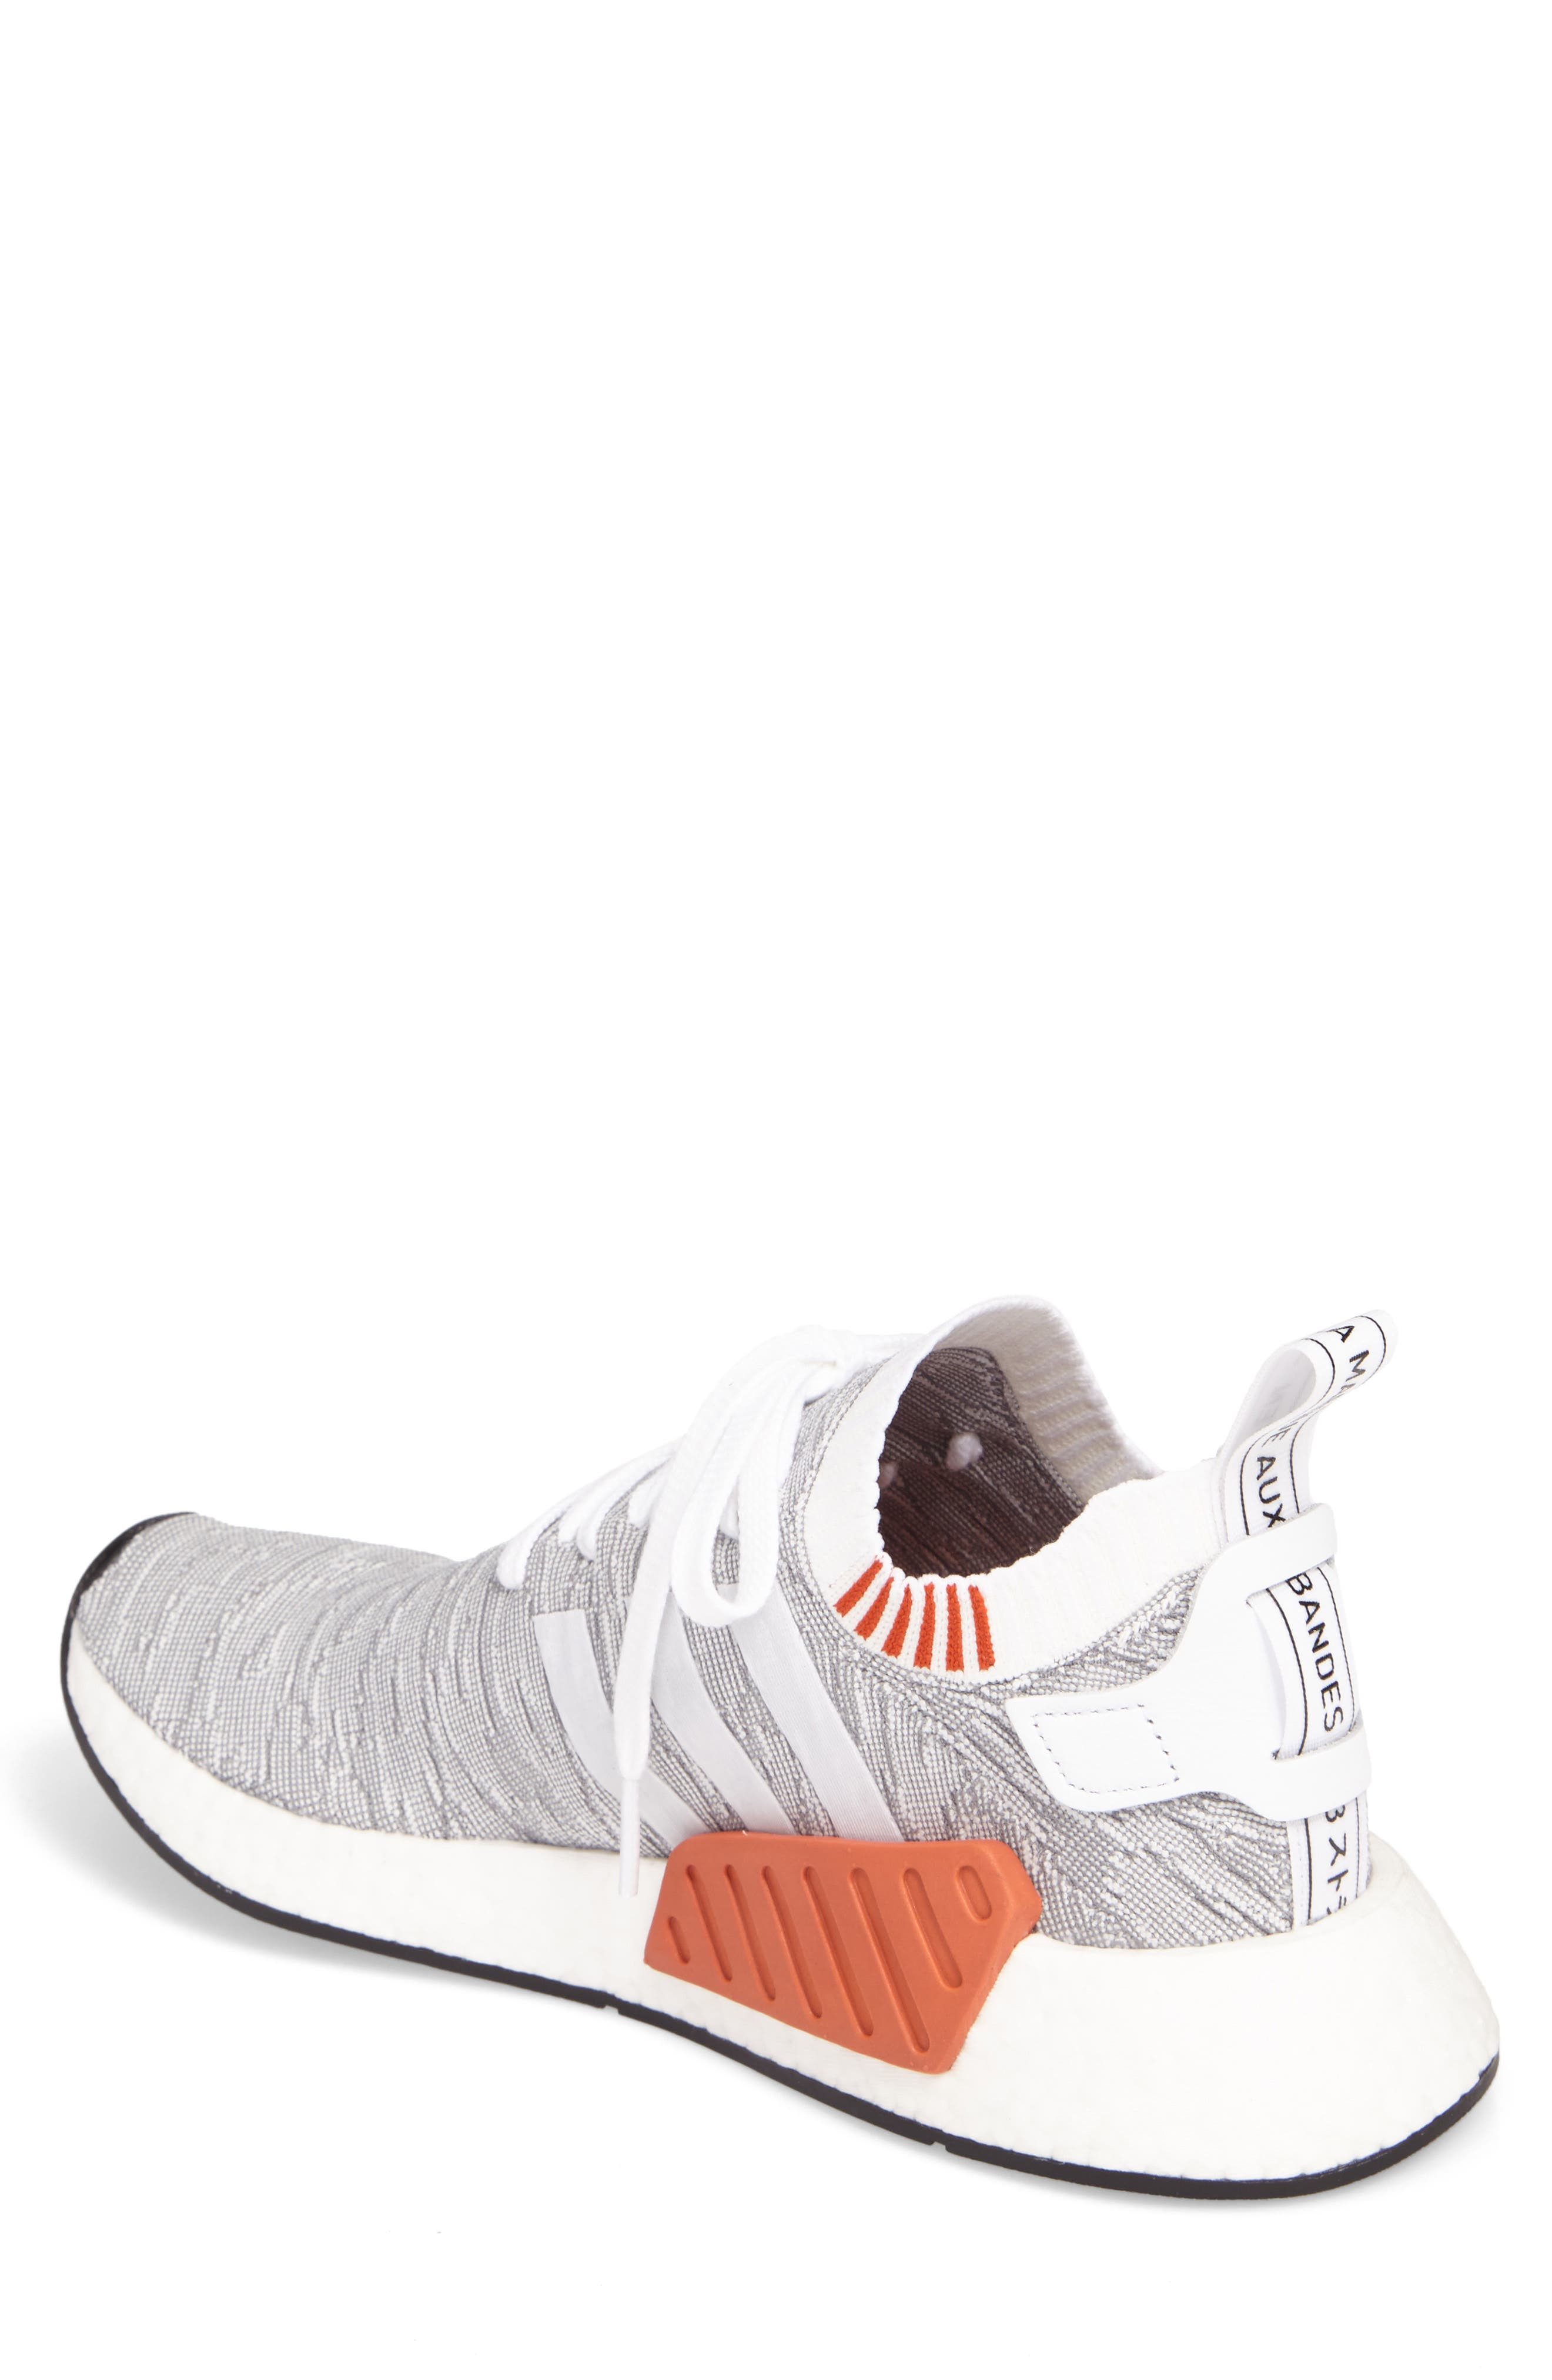 NMD R2 Primeknit Running Shoe,                             Alternate thumbnail 2, color,                             White/ White/ Core Black